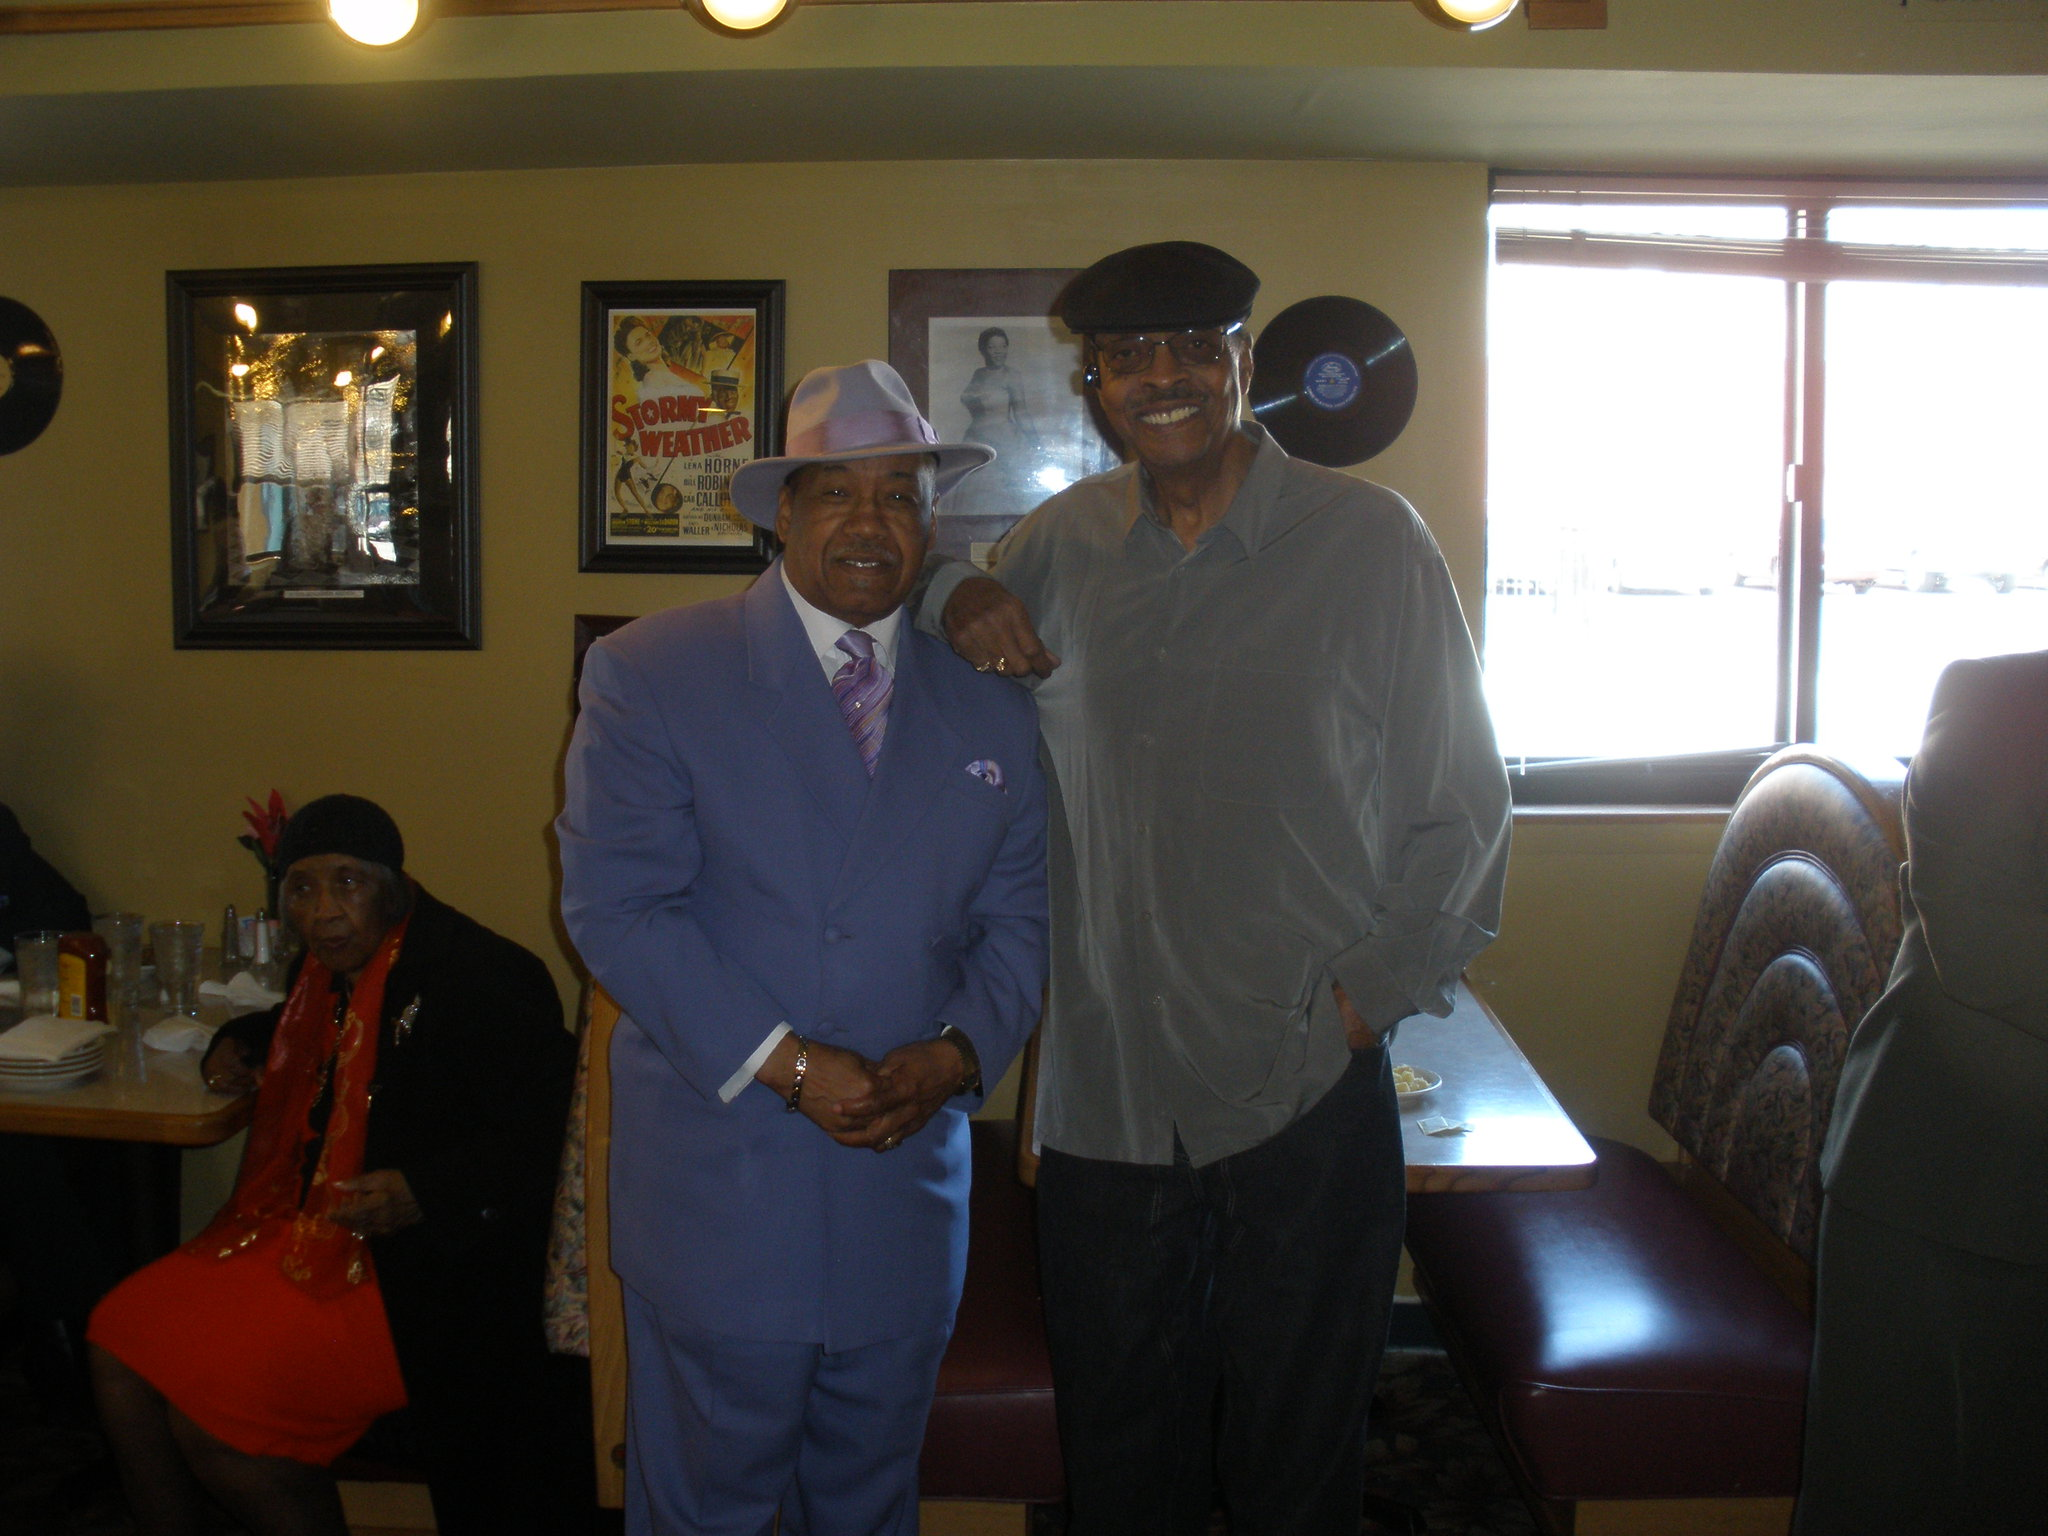 Herb Kent and Marshall Thompson